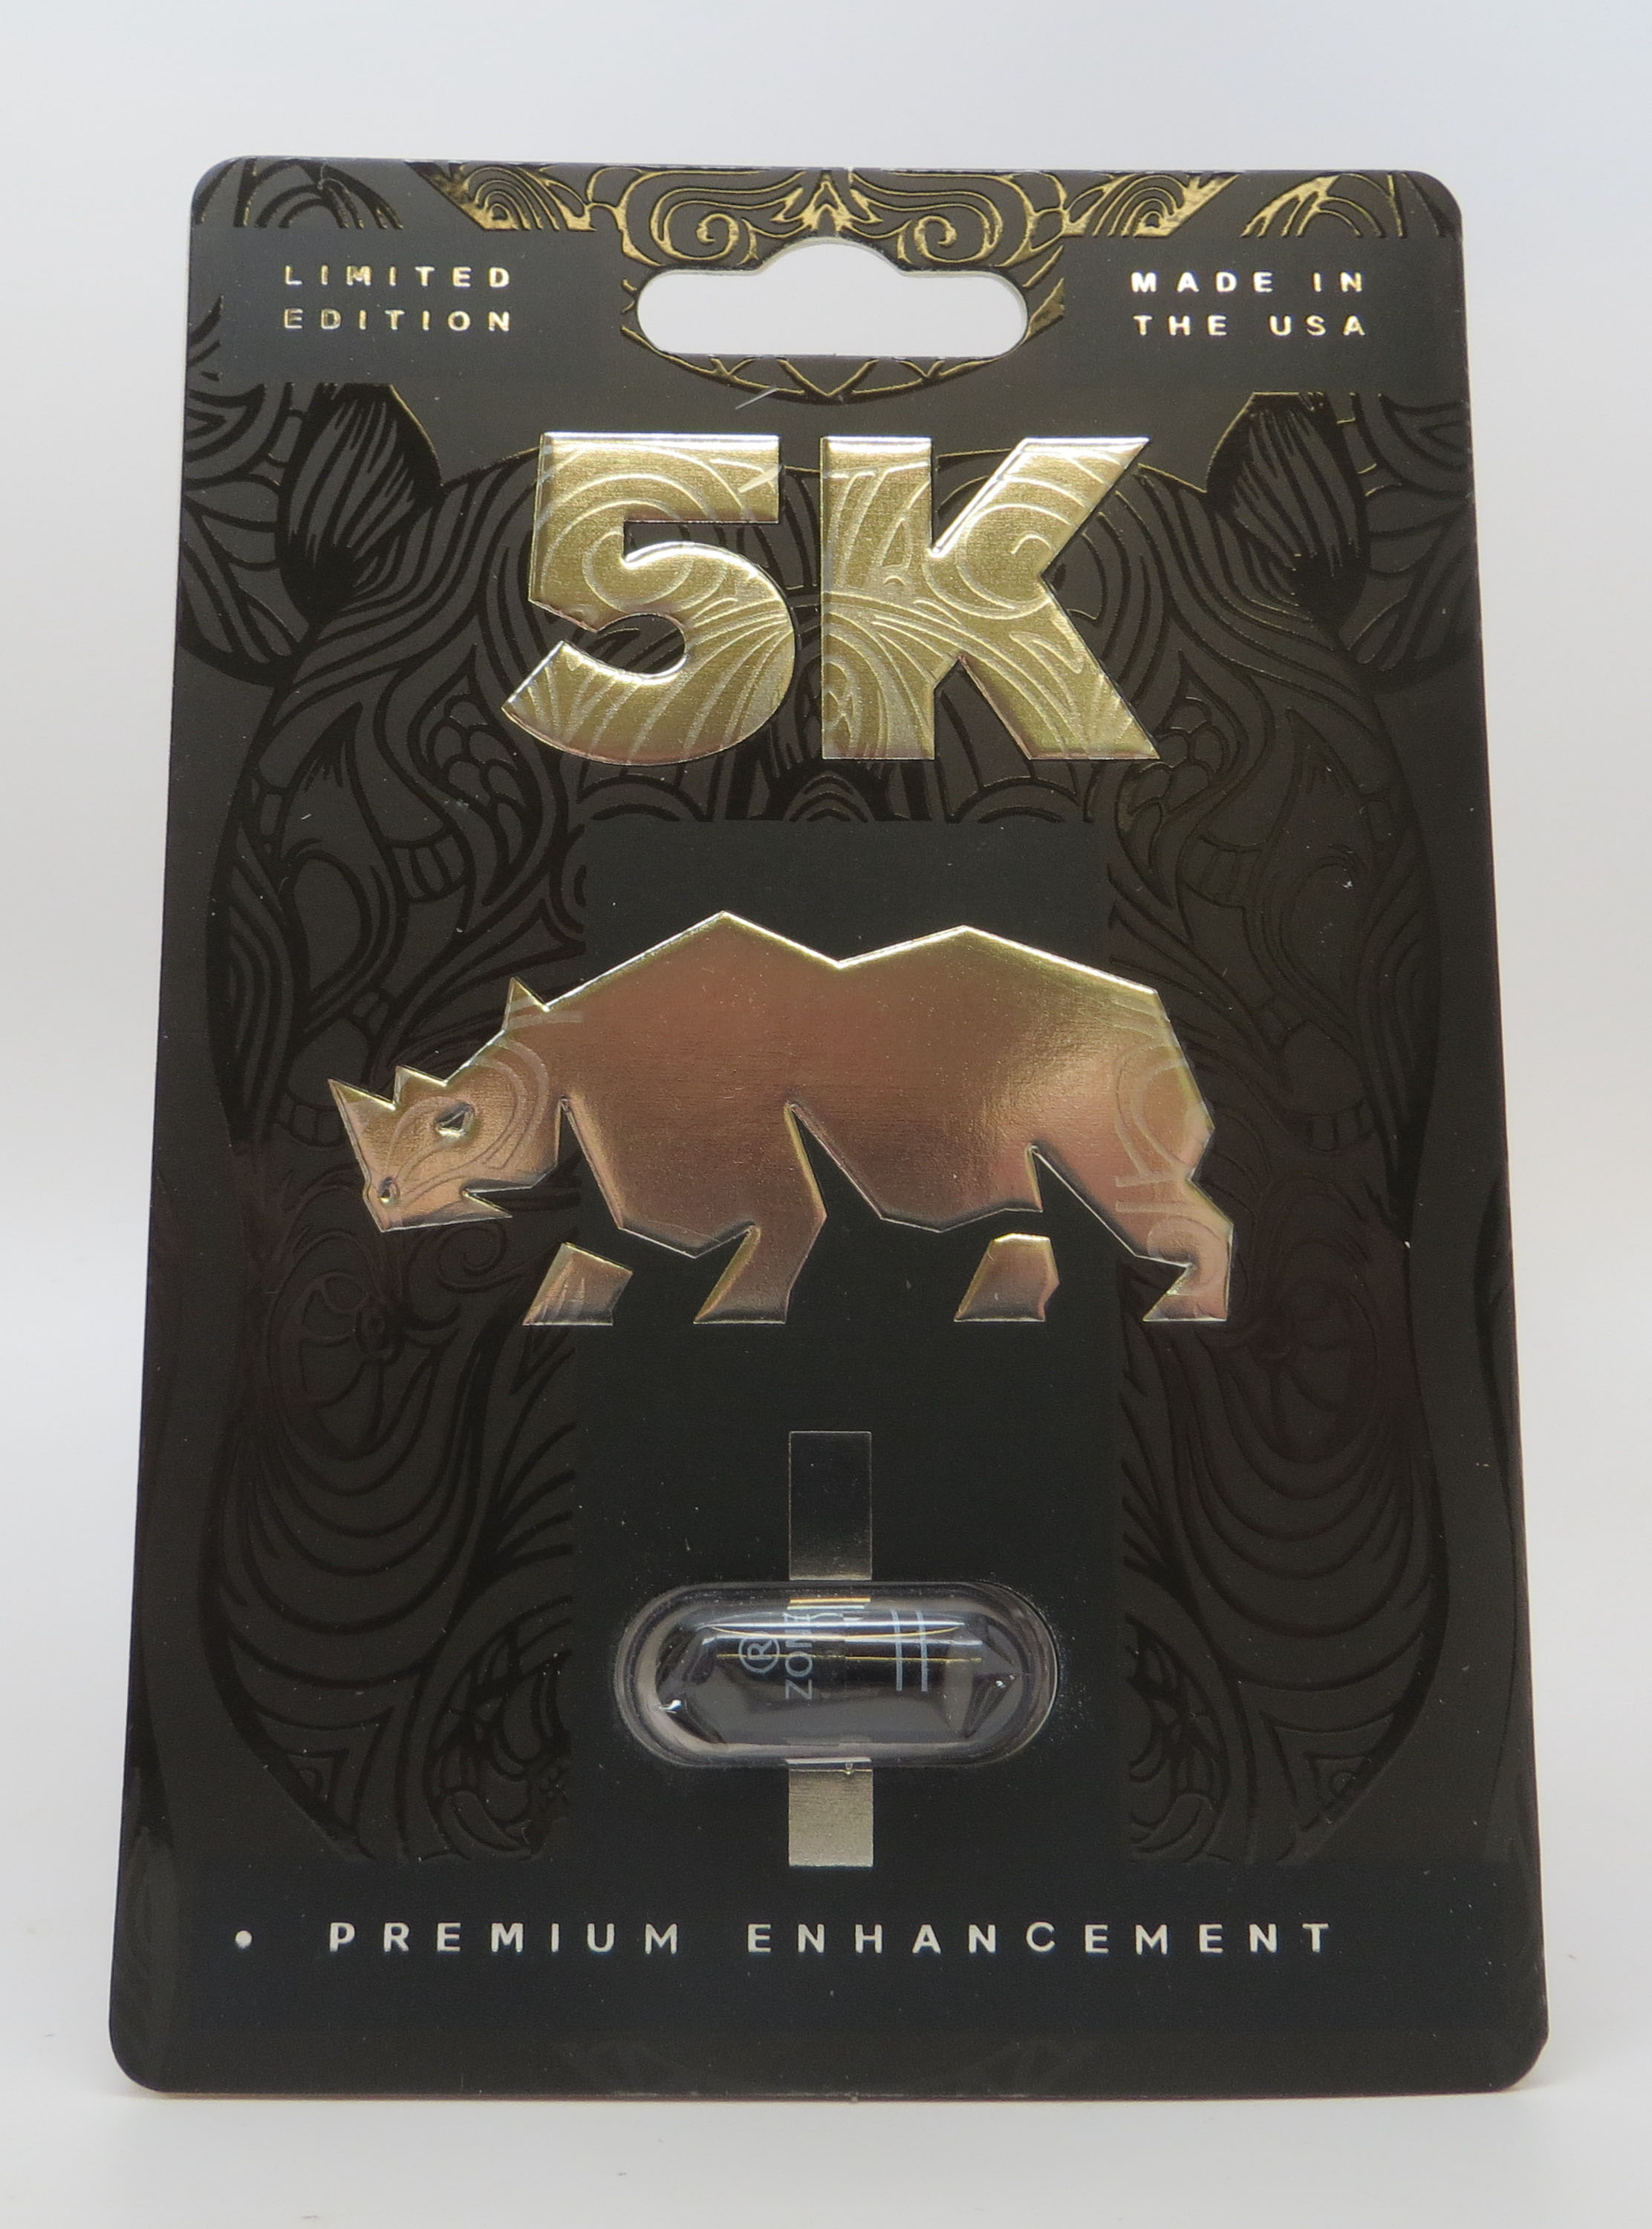 Image of the illigal product: Rhino 5K